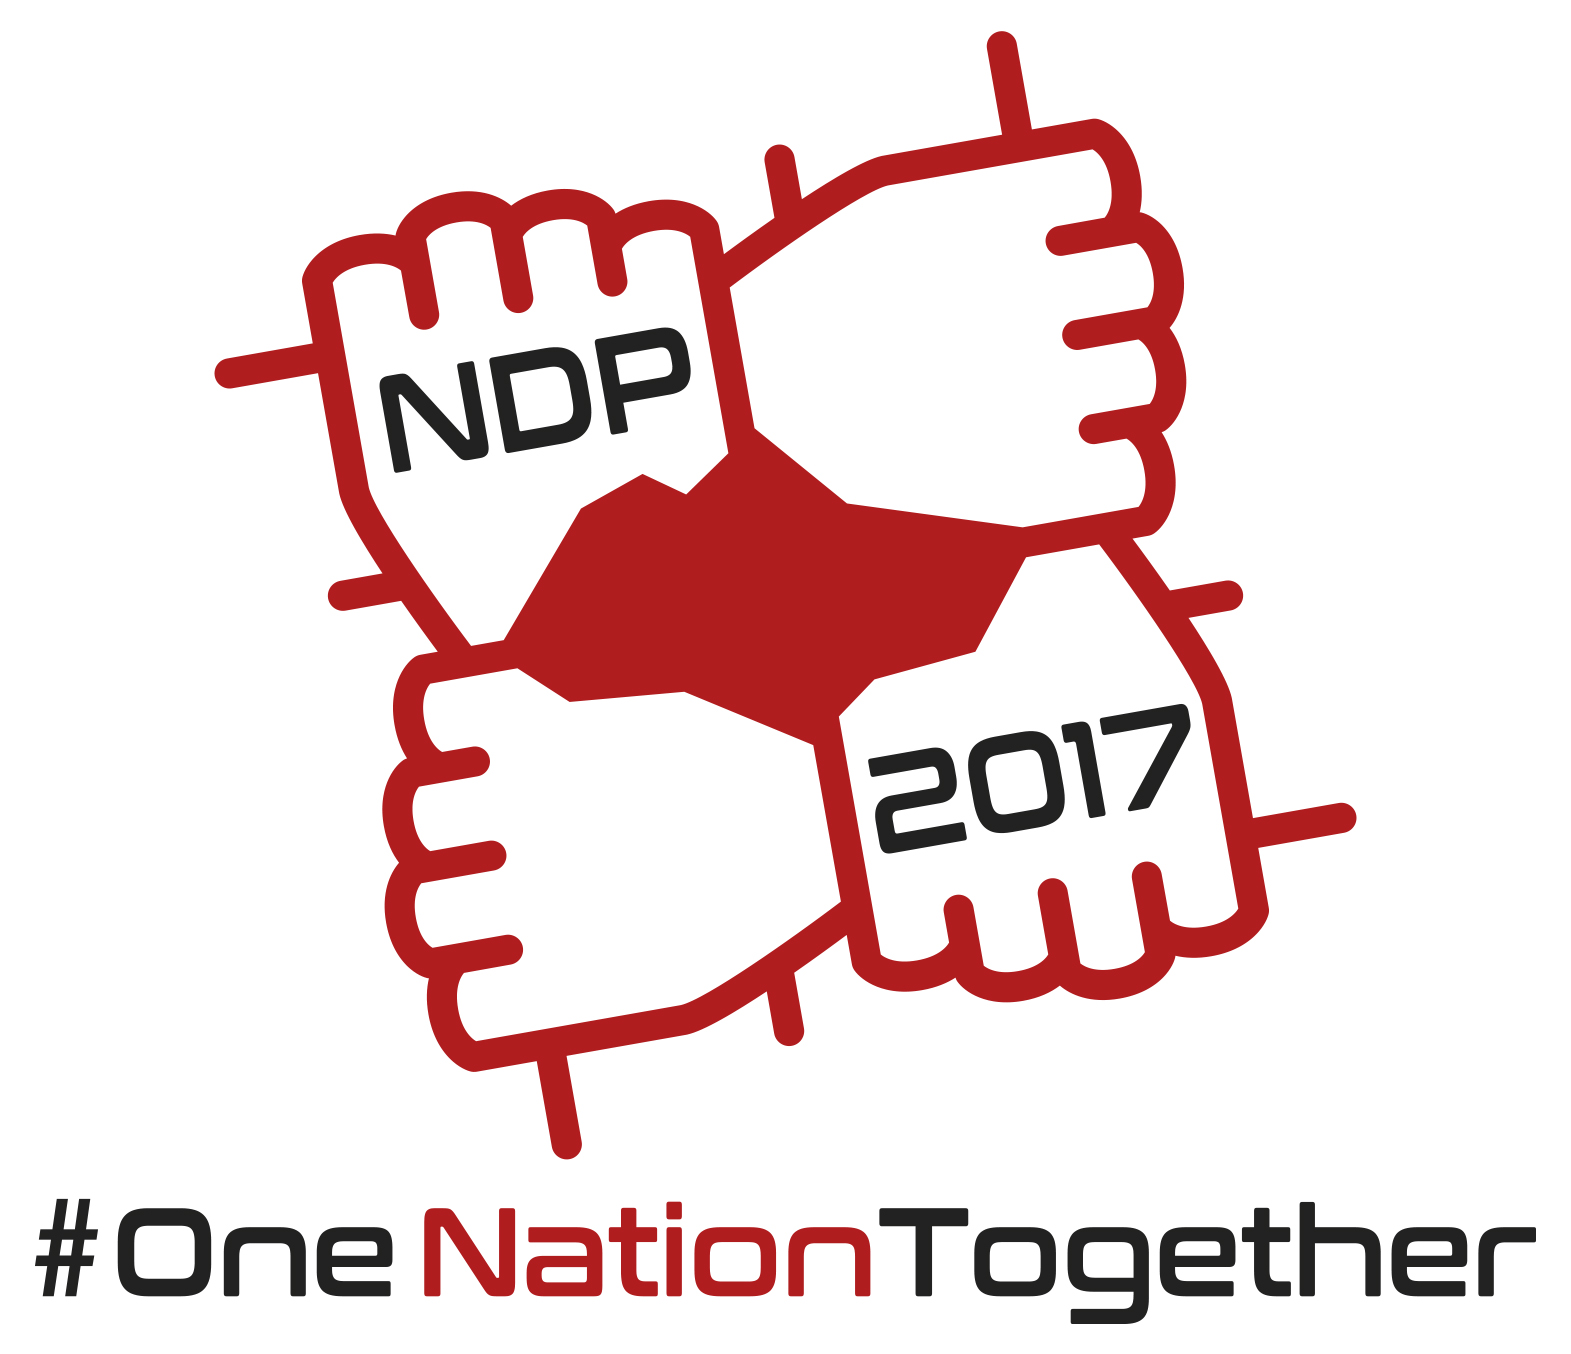 Celebrating #OneNationTogether in NDP 2017 | Local ...